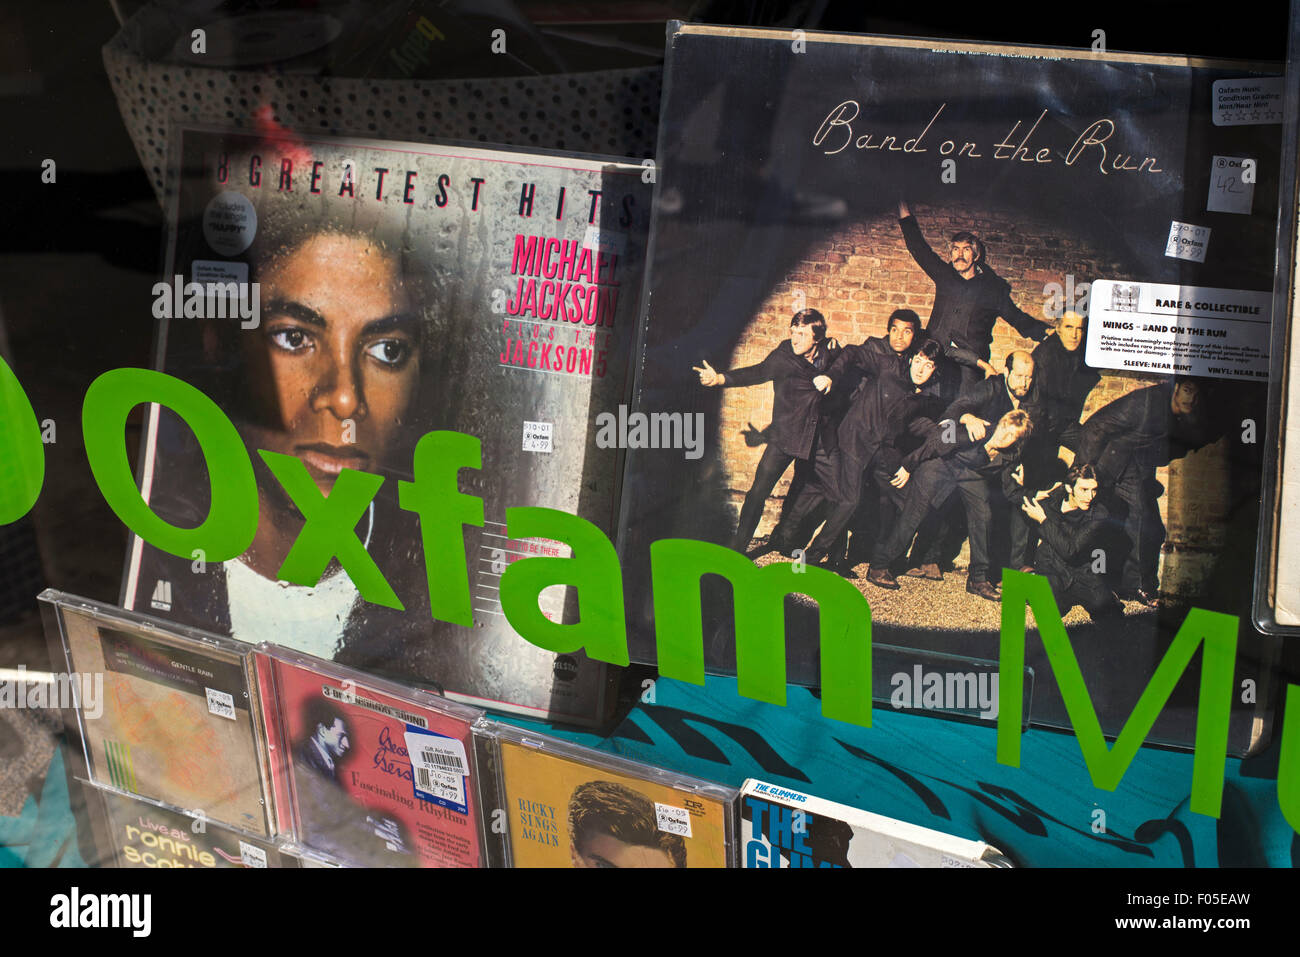 Vinyl records and CD's for sale in the window of an Oxfam charity shop in Edinburgh. Stock Photo